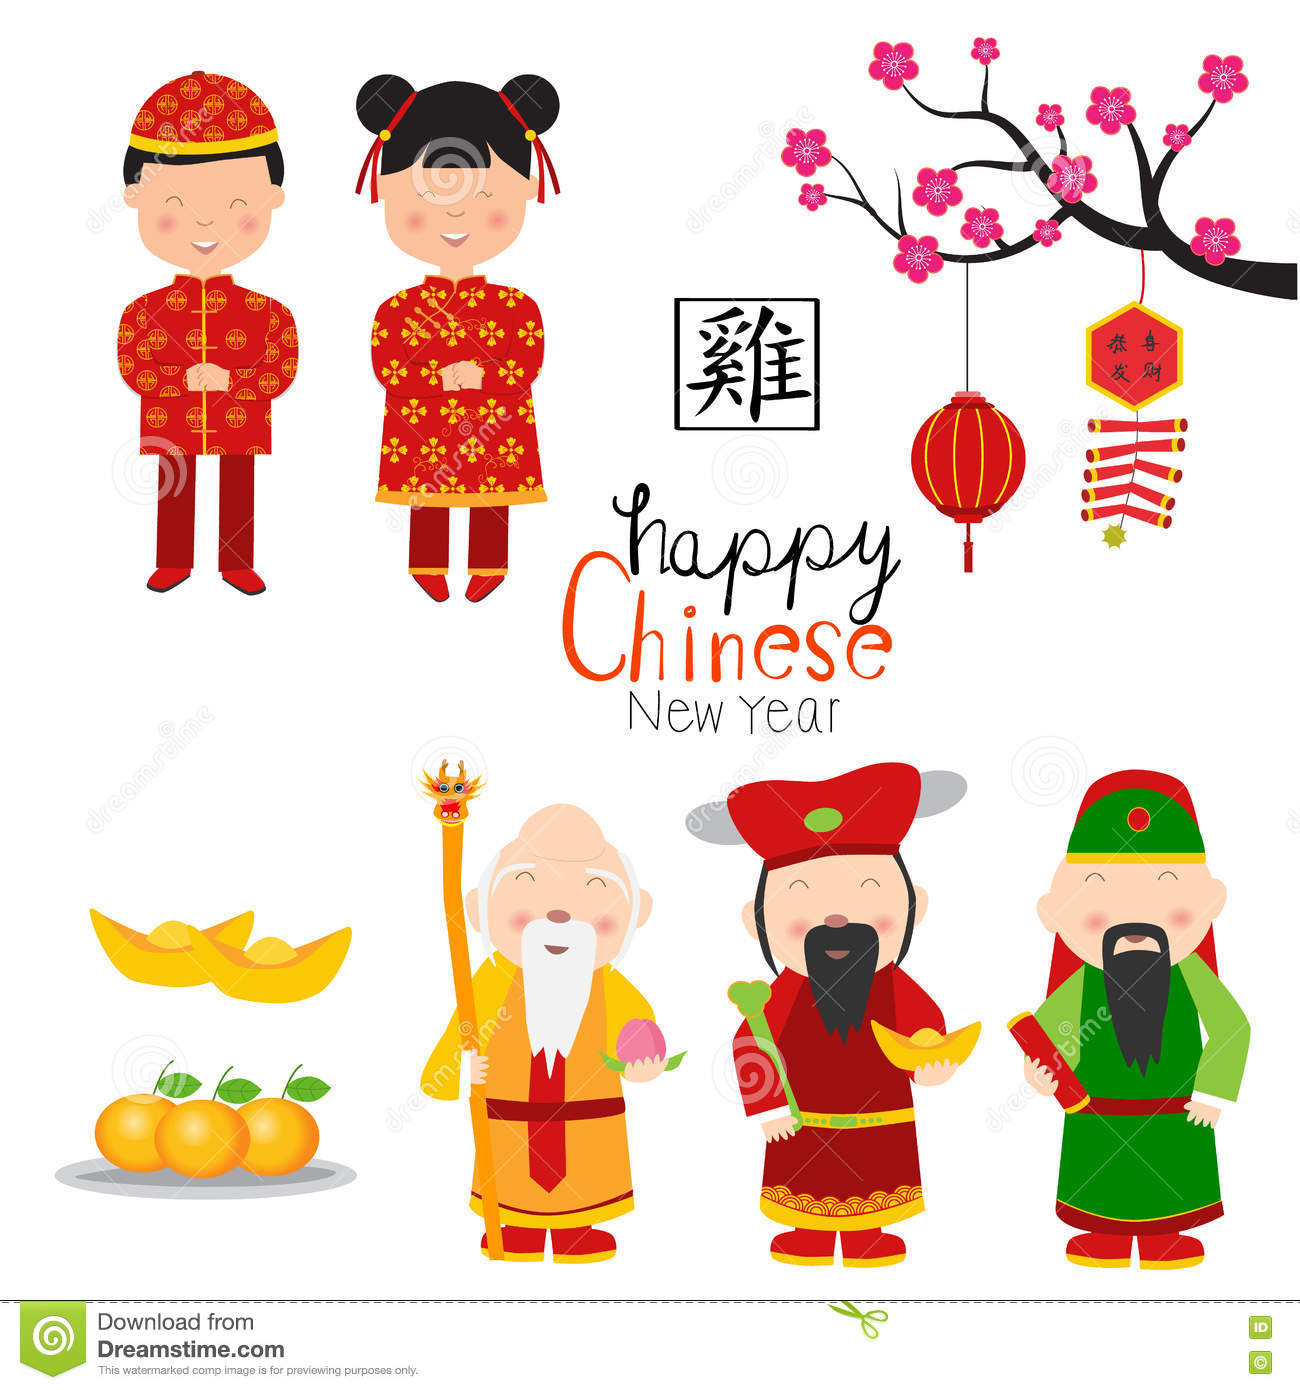 Happy Chinese New Year 2017 Elements Vector Illustration ...